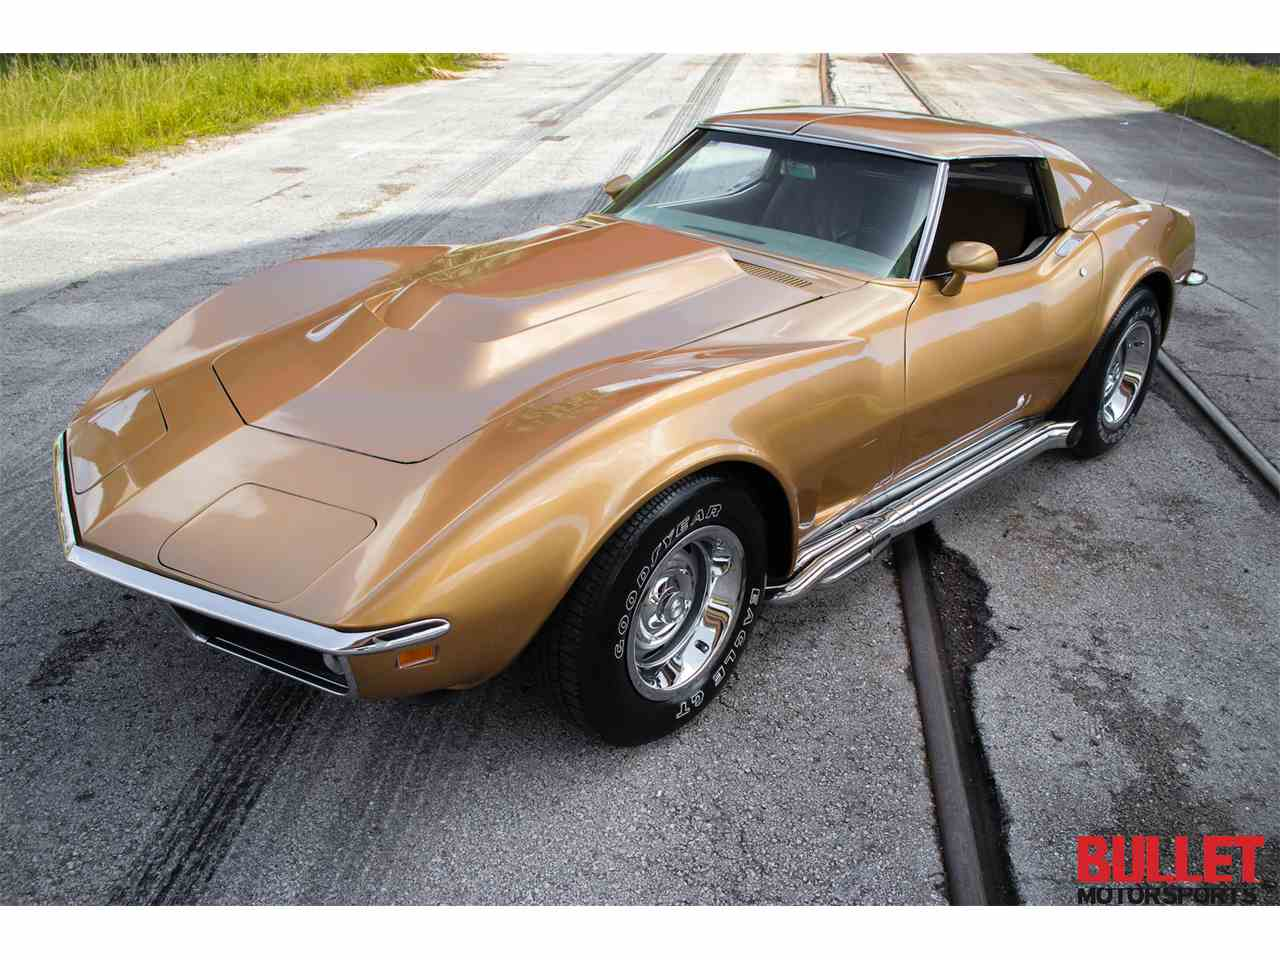 Large Picture of Classic '69 Corvette located in Fort Lauderdale Florida - $24,000.00 Offered by Bullet Motorsports Inc - LS2F